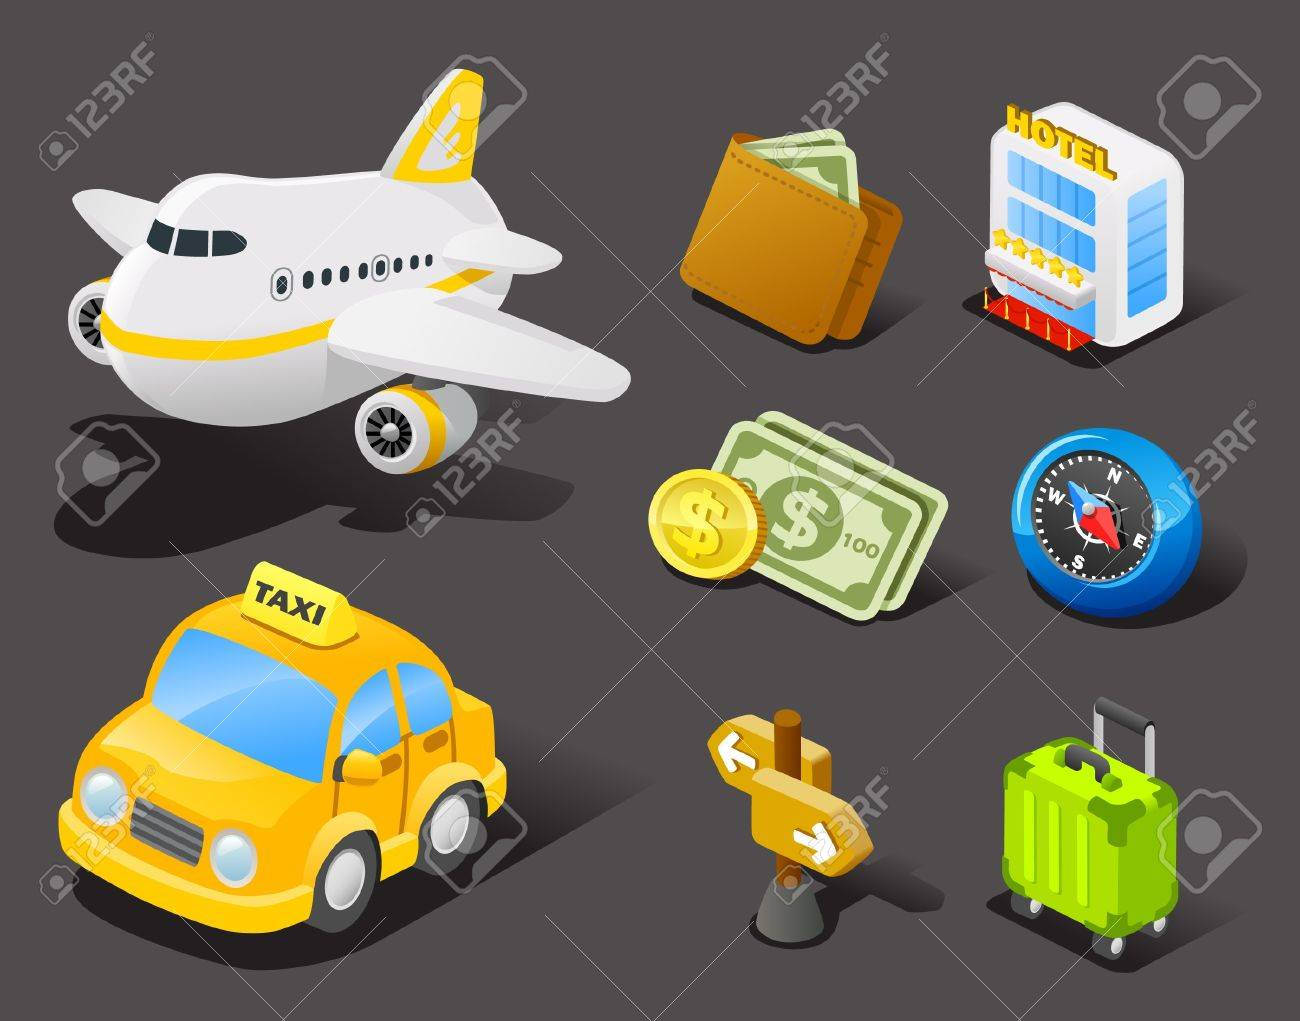 travel icon set Stock Vector - 10567275